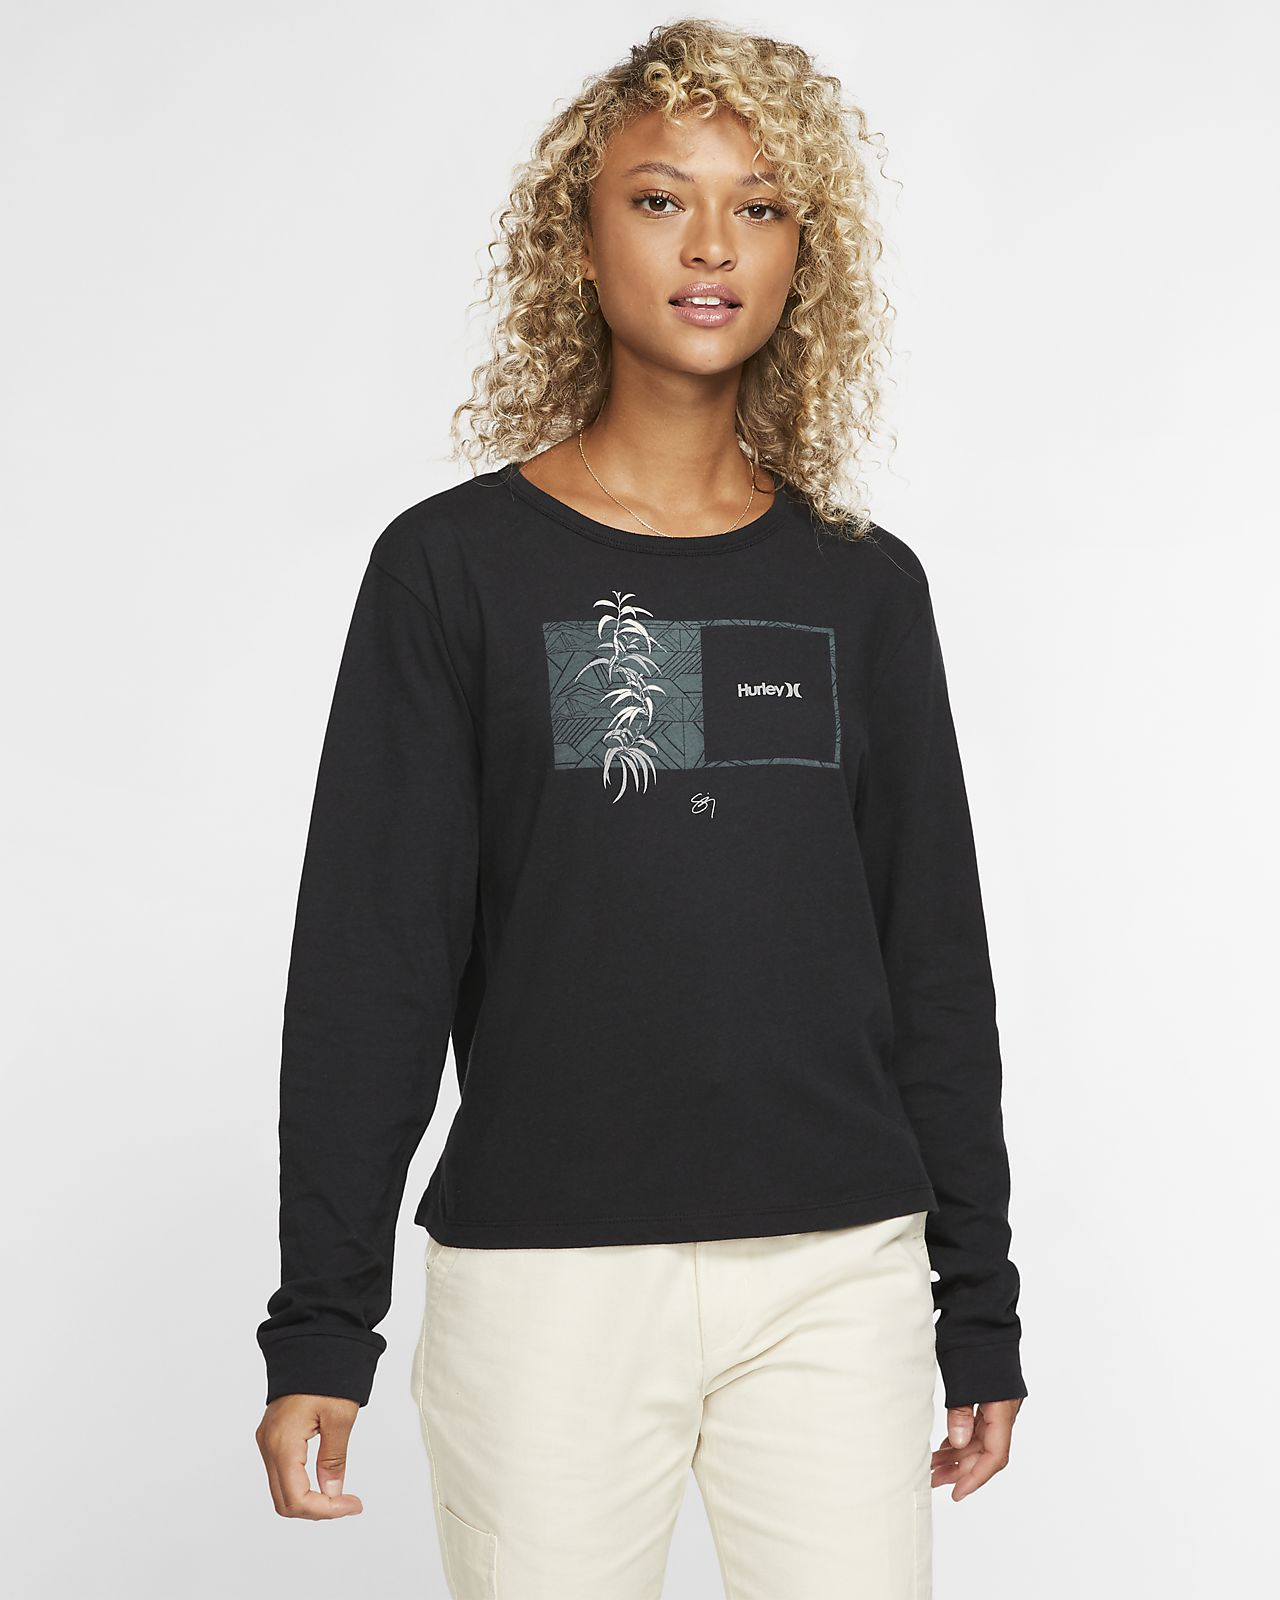 Tee-shirt à manches longues Hurley Sig Zane Perfect pour Femme